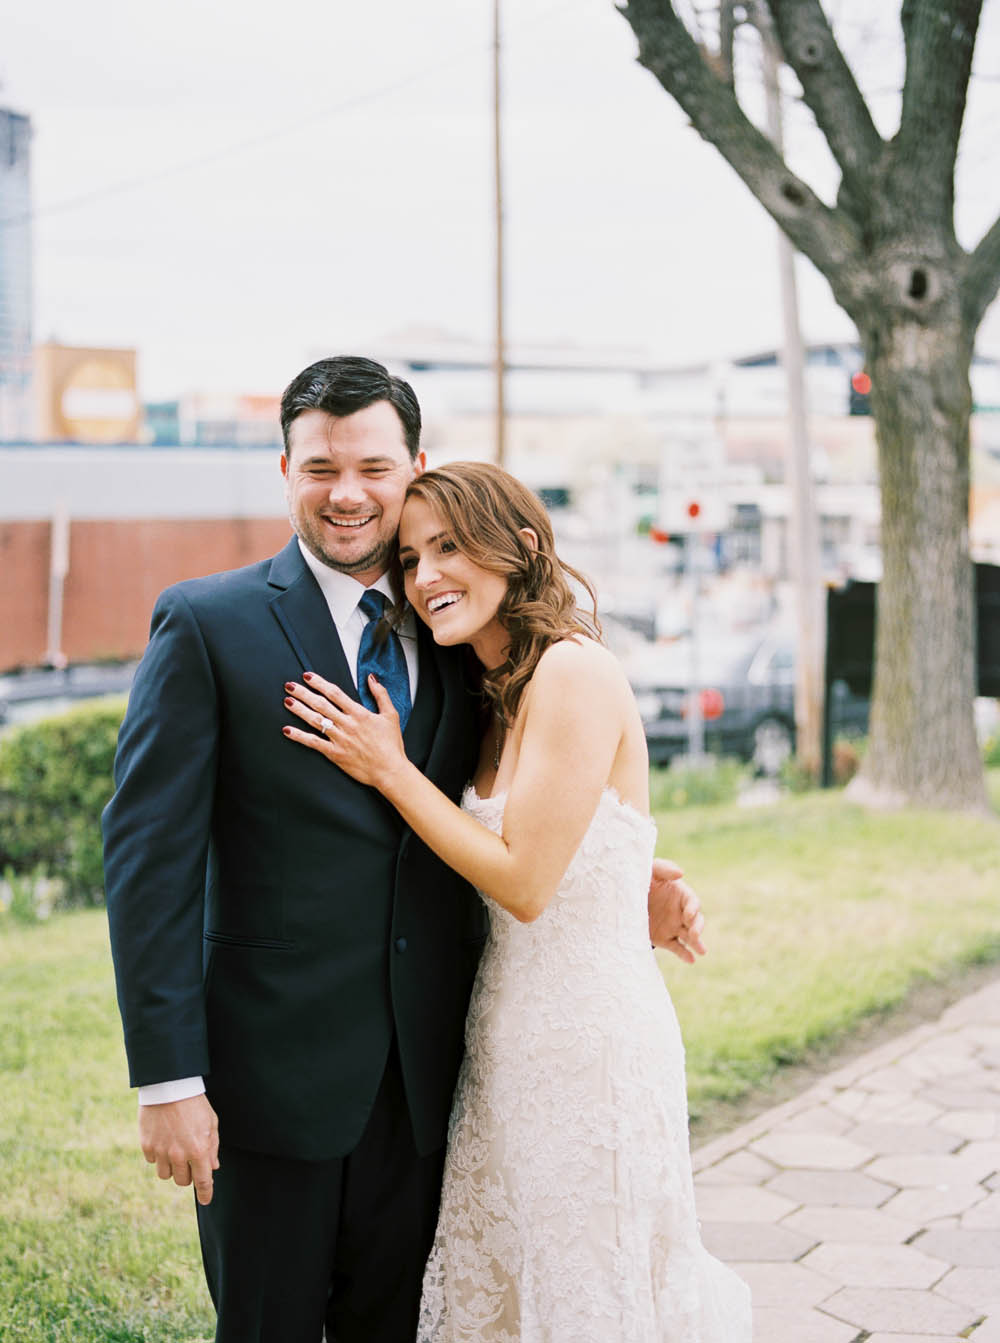 nashville downtown aVenue wedding photographers documentary natural real moments ©2016abigailbobophotography-22.jpg